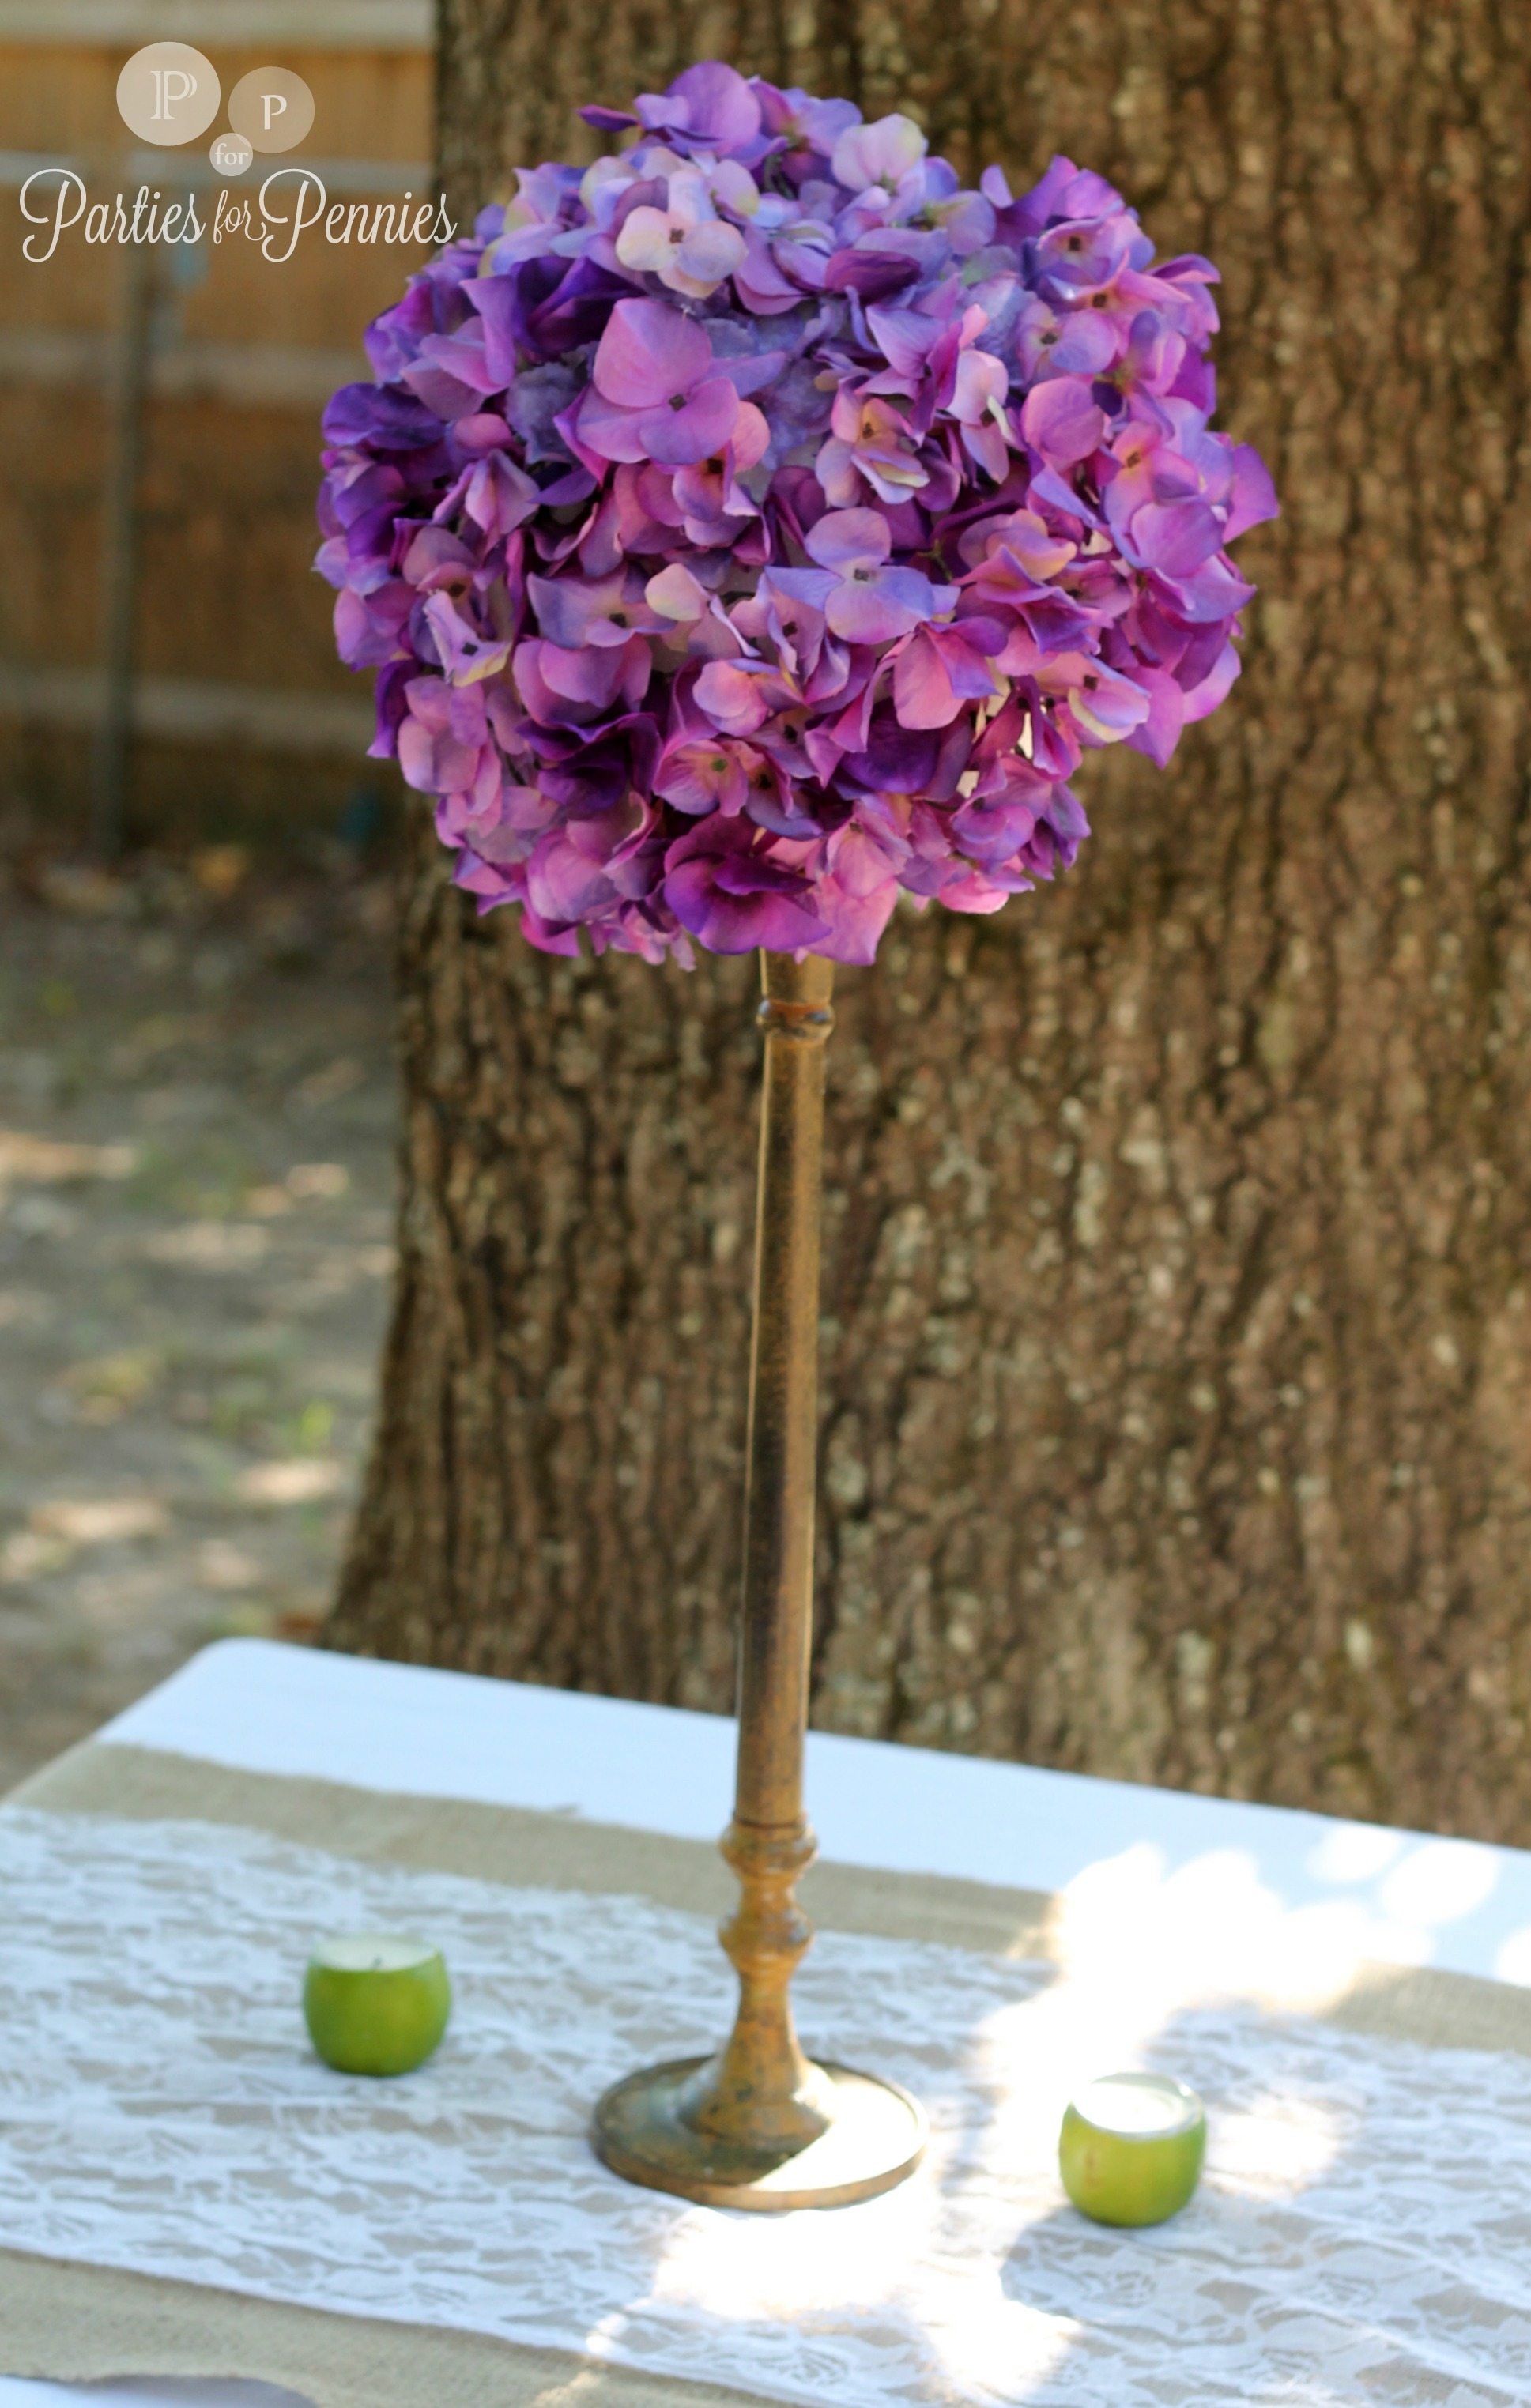 Wedding centerpiece parties for pennies